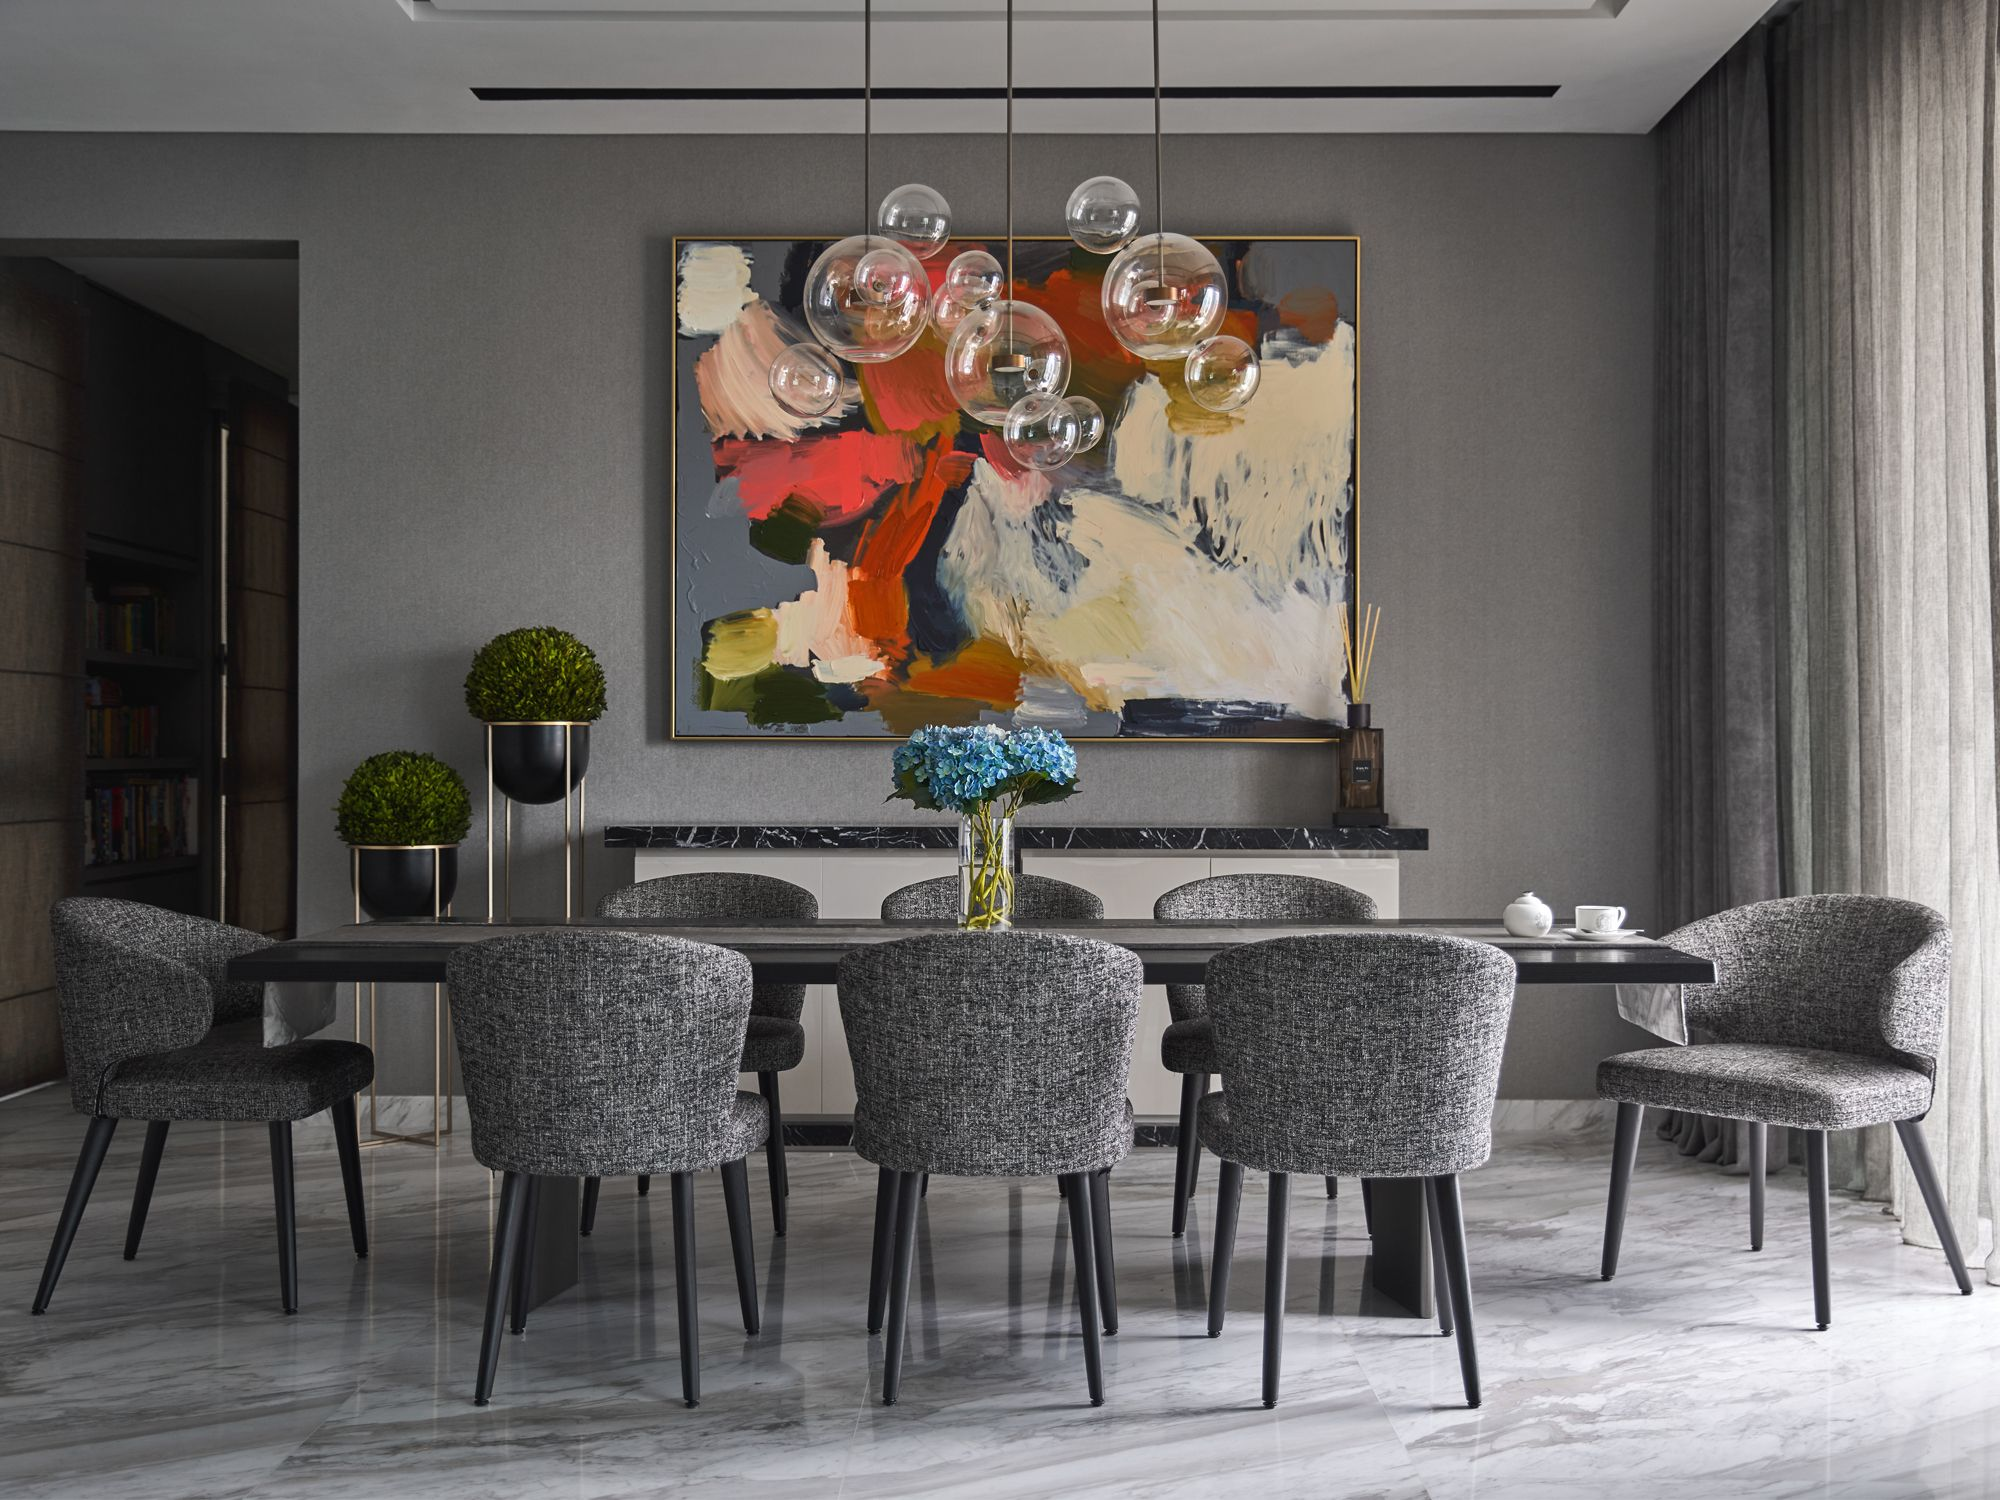 The dining area is large and spacious, featuring the complementing marble and grey combination seen throughout the apartment